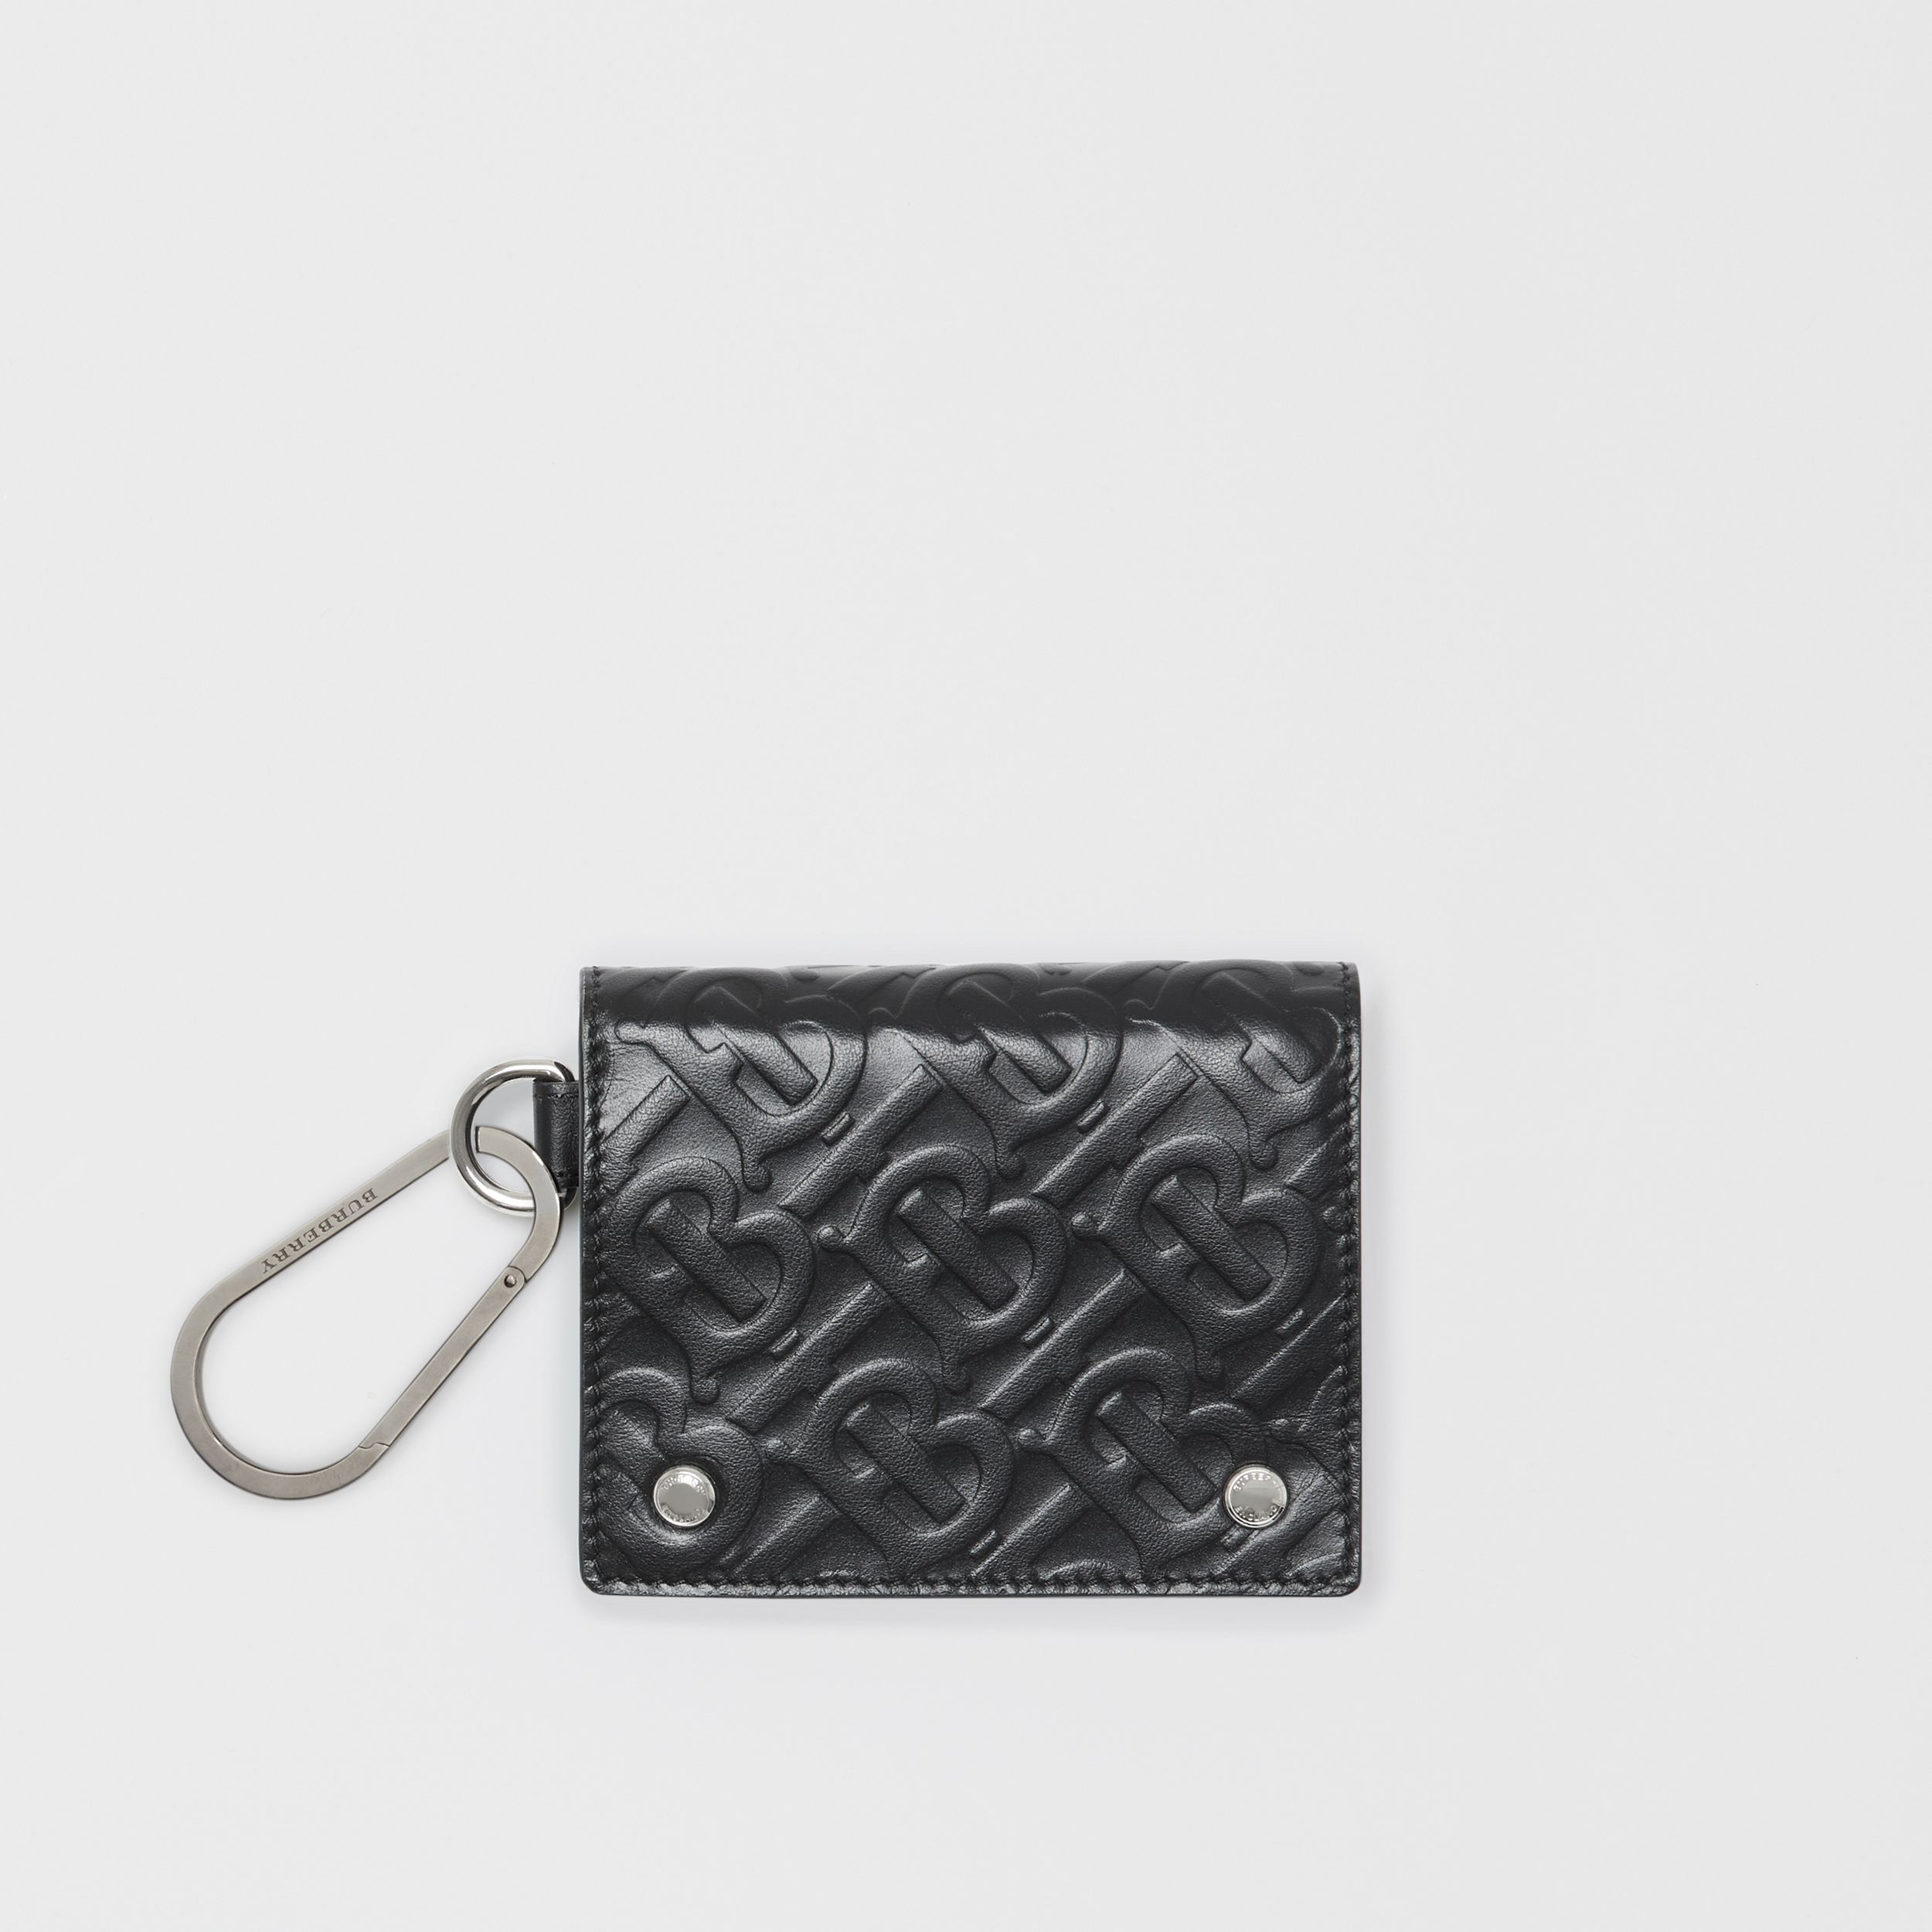 Monogram Embossed Leather Trifold Wallet in Black | Burberry - 1